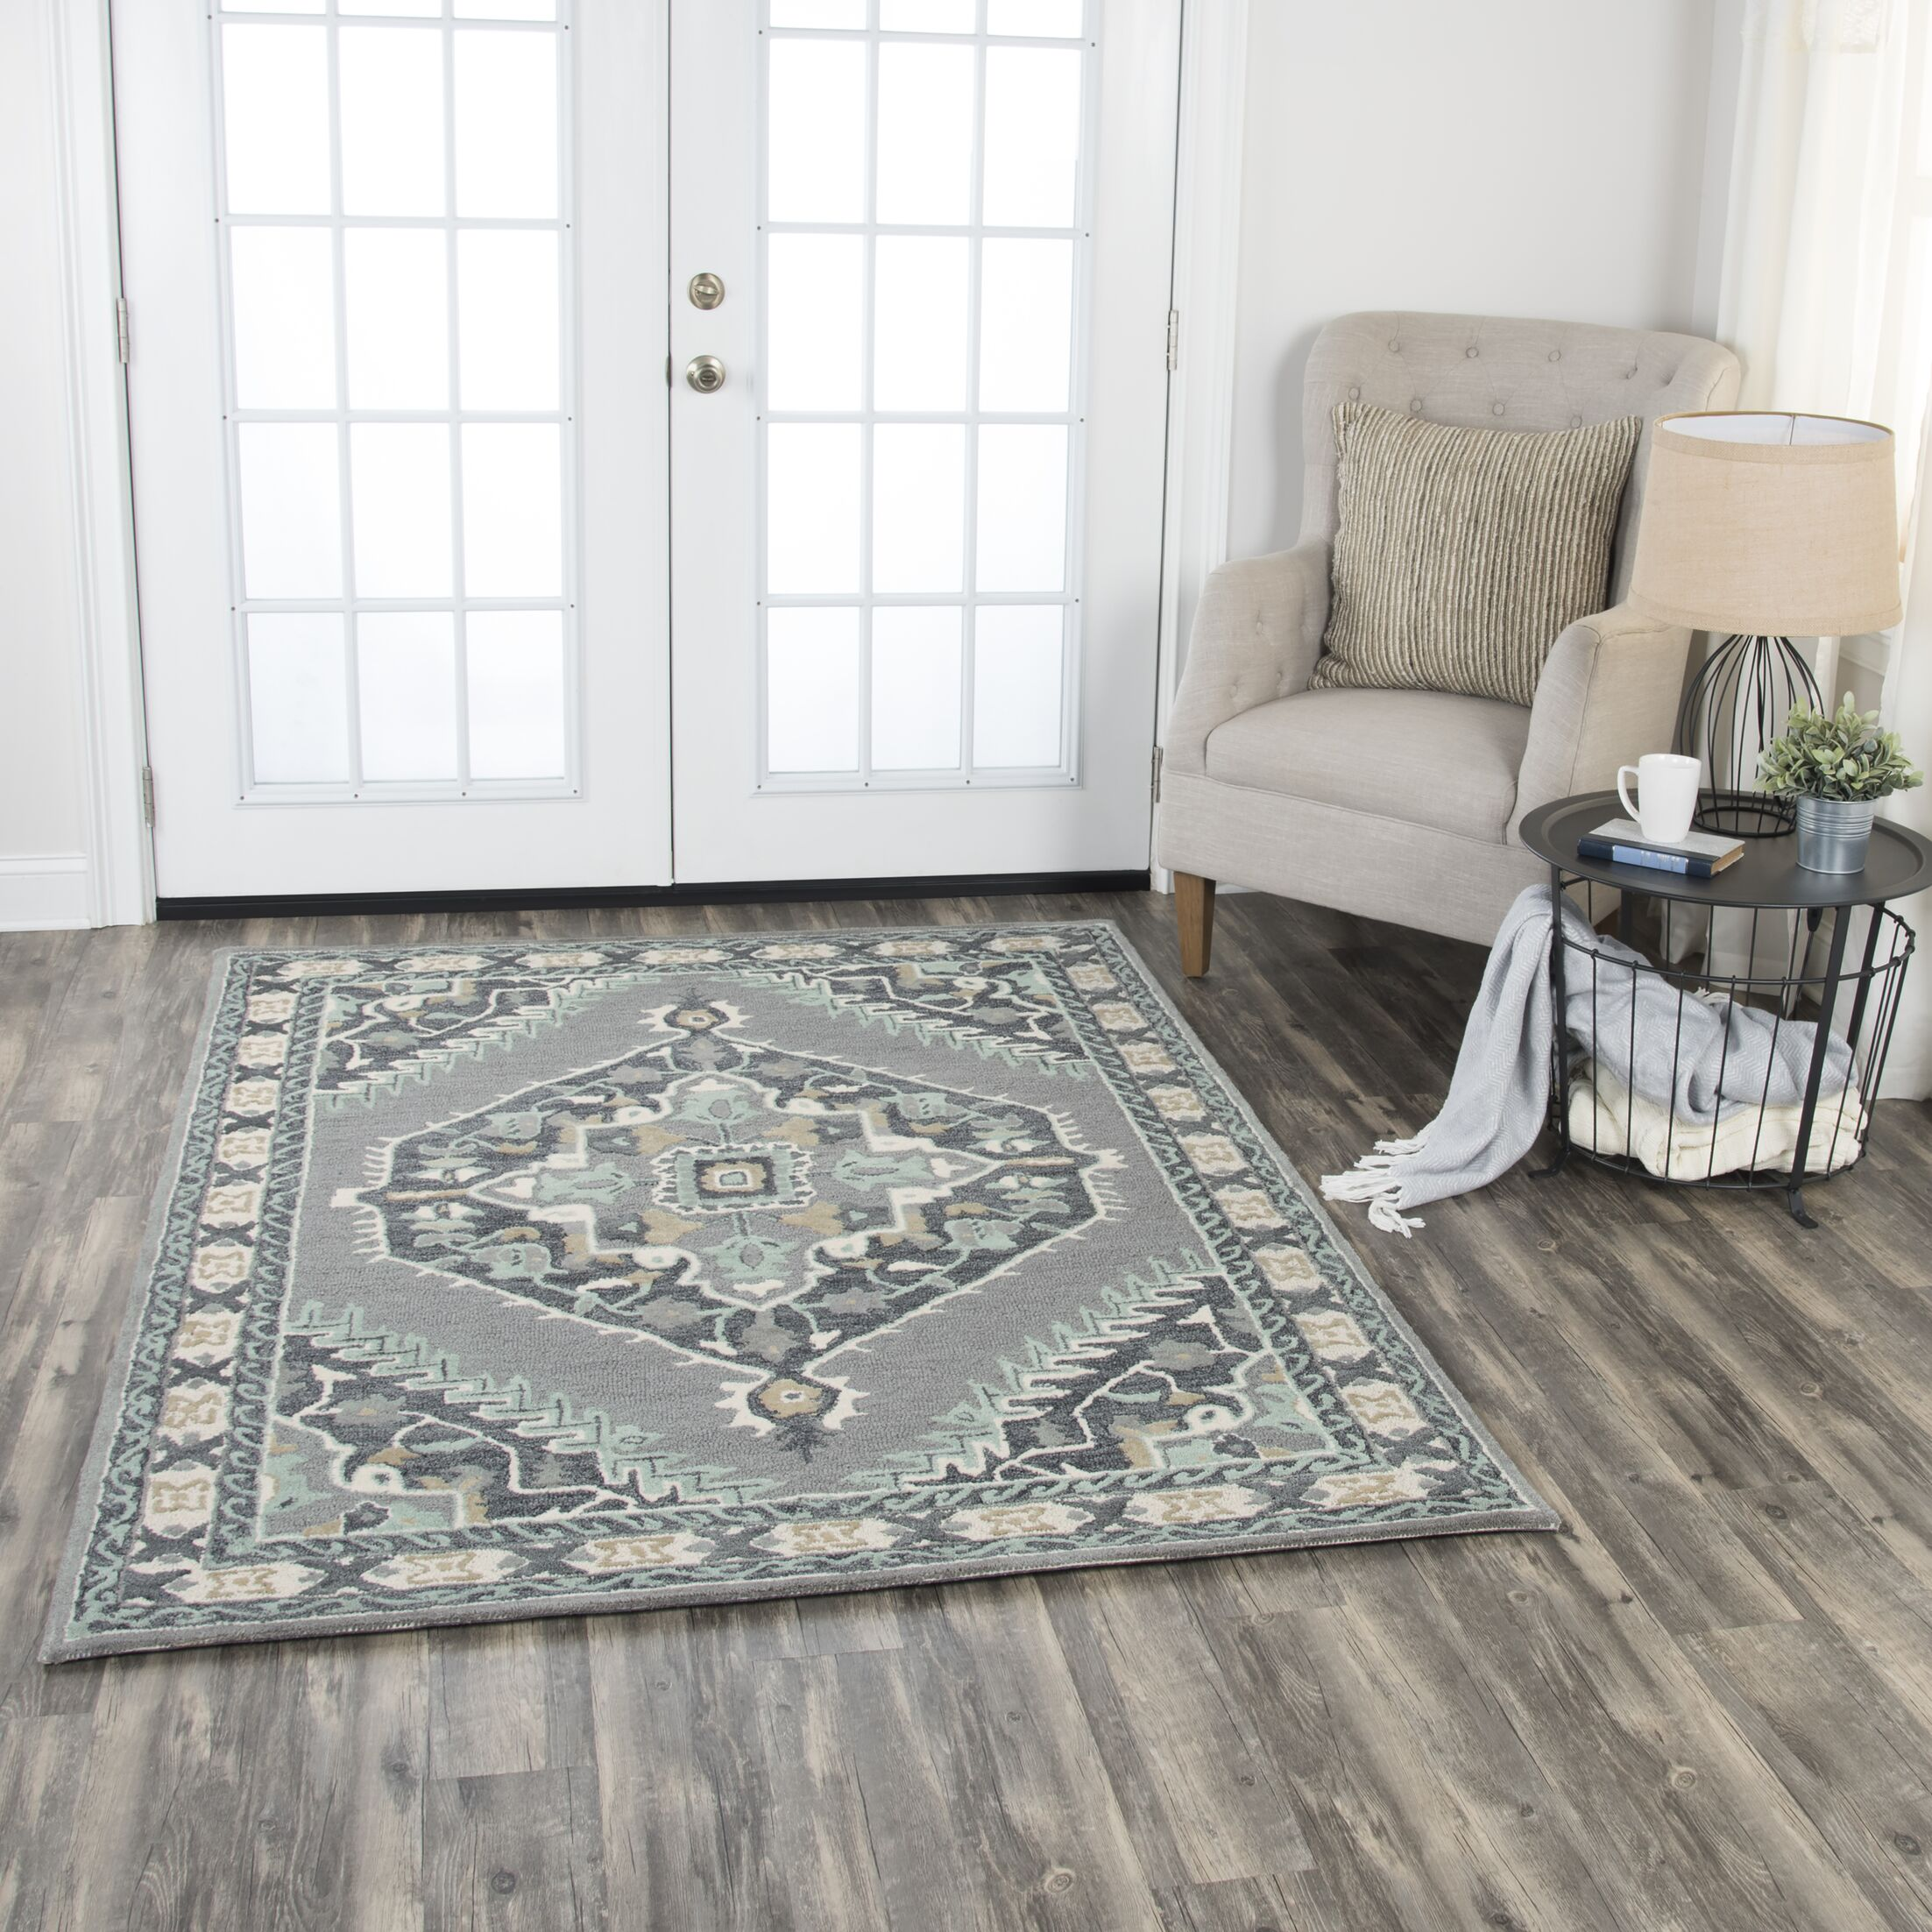 Genny Rustic Hand-Tufted Wool Gray Area Rug Rug Size: 5' x 7'